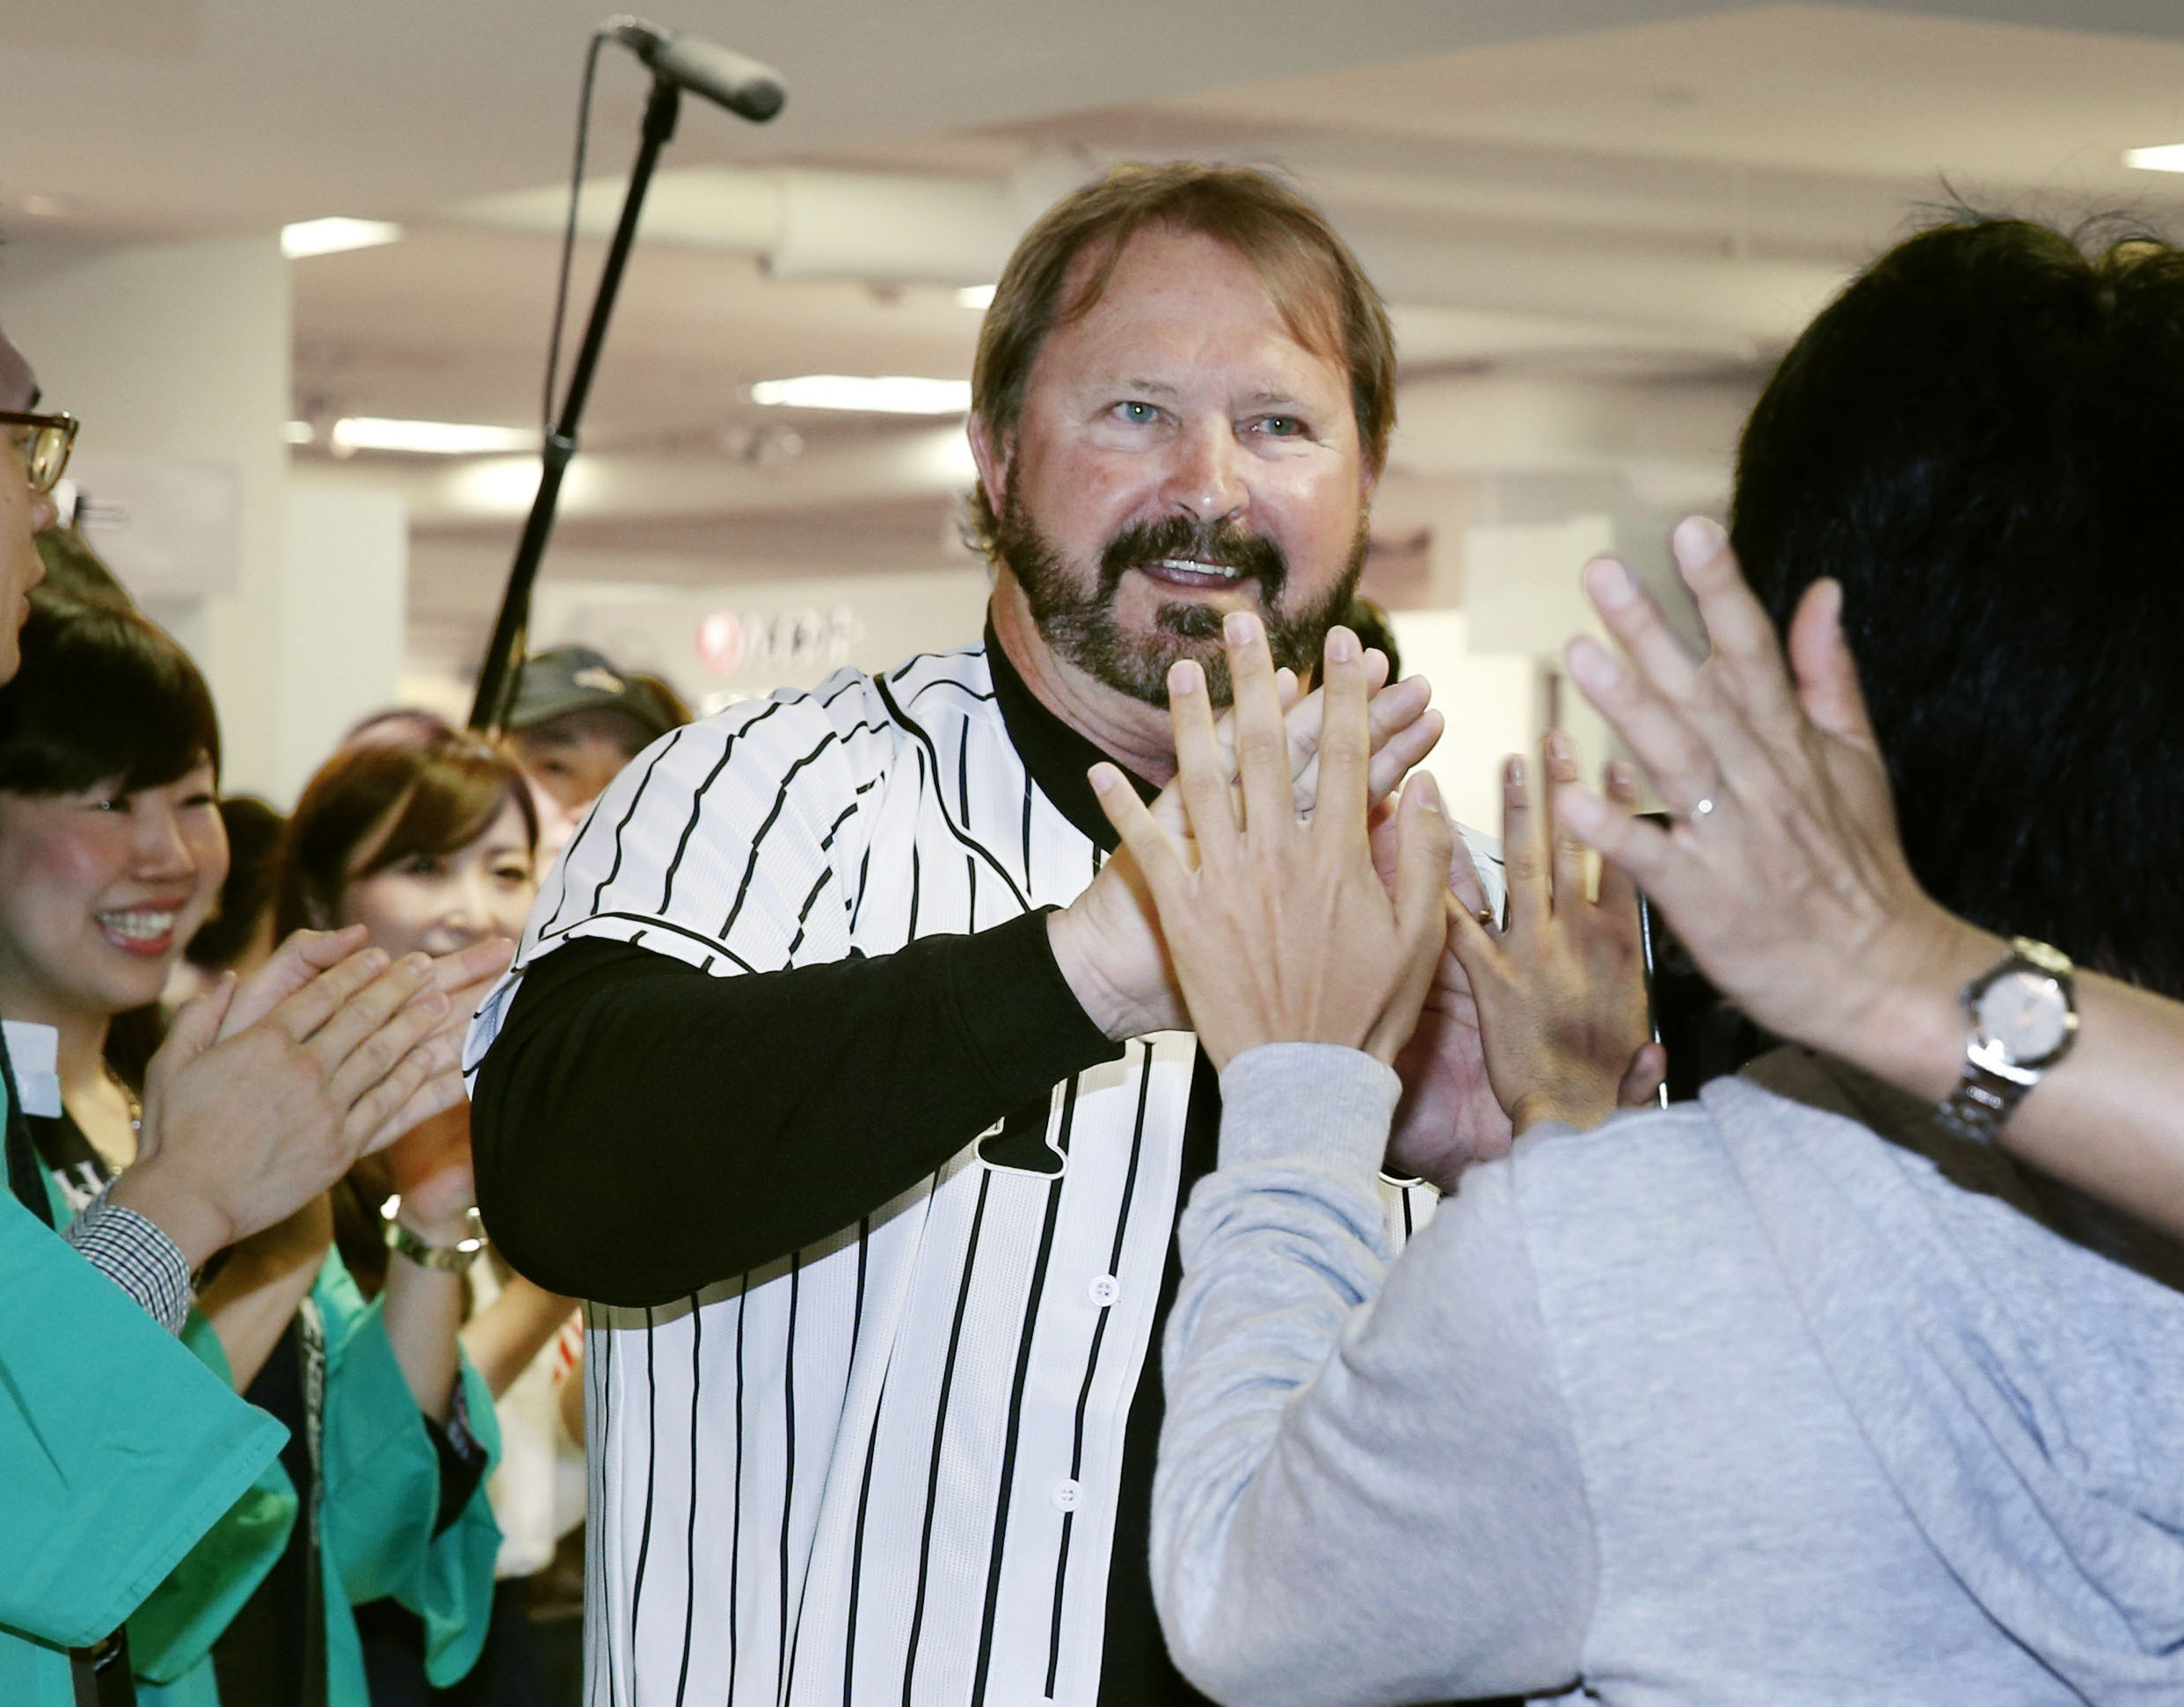 Sen. Randy Bass, D-Okla., wearing Hanshin Tigers' uniform, in greeted by fans during an event at Hanshin Department Store in Osaka, western Japan, Friday, April 17, 2015. Bass was back in Japan, recalling his standout baseball career with the Tigers. The